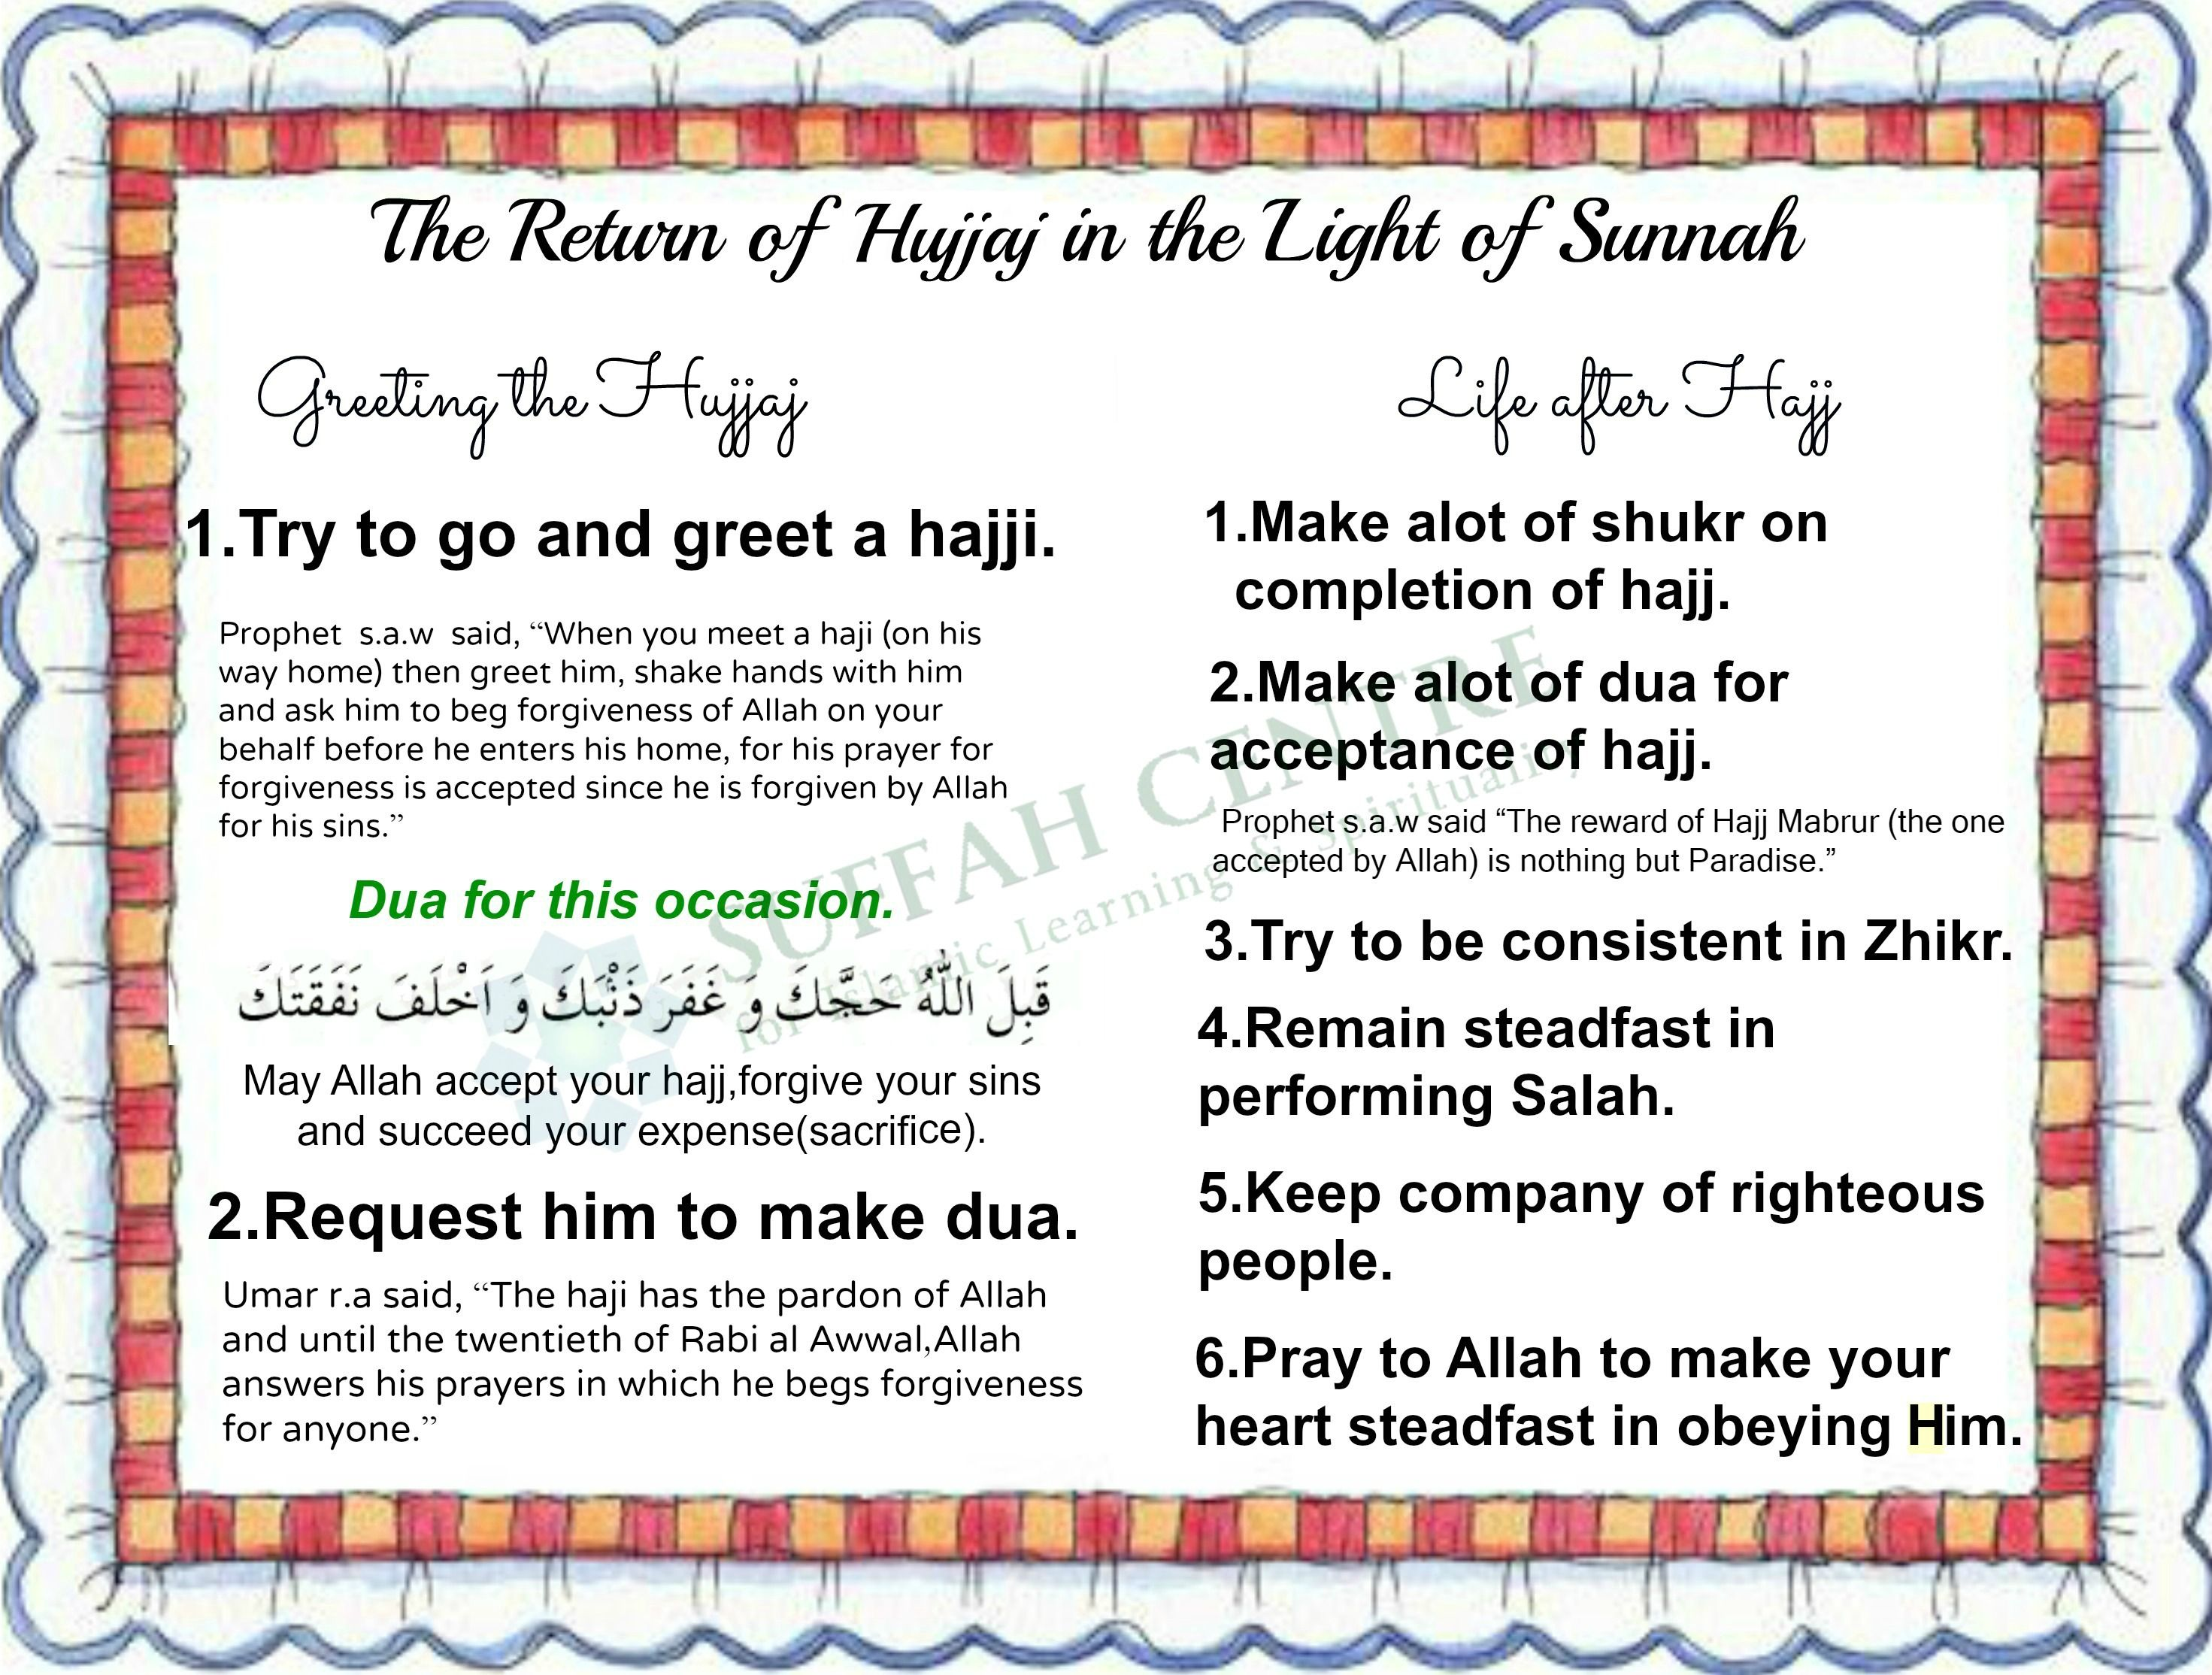 Here is the sunnah of how to greet someone coming back from hajj here is the sunnah of how to greet someone coming back from hajj kristyandbryce Image collections